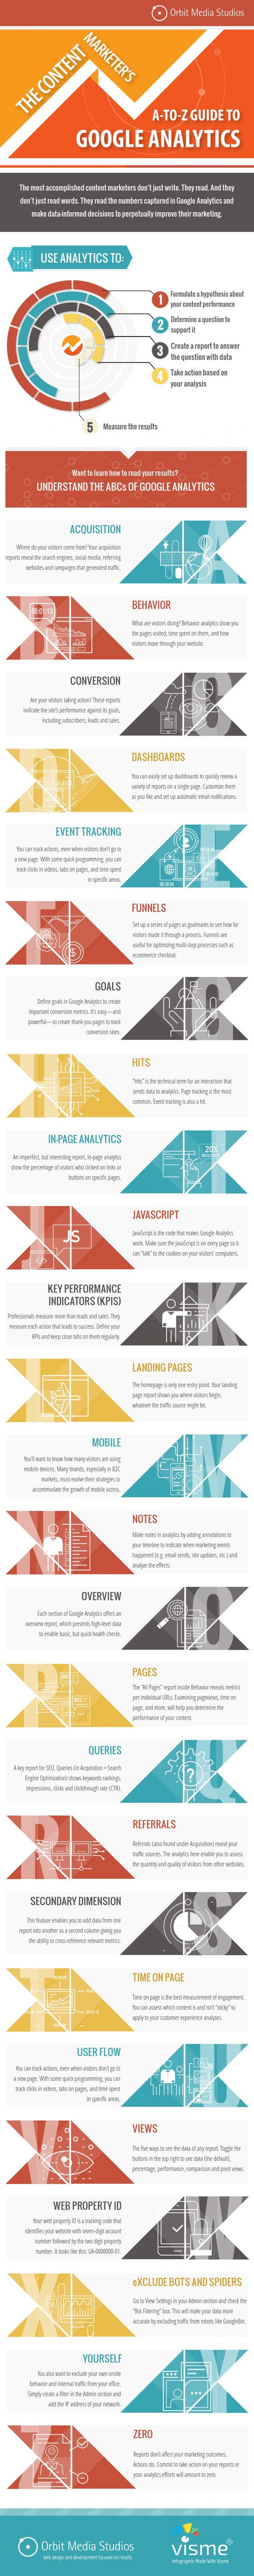 "KPIs und Analysen im Content Marketing: ""Google Analytics: The A-to-Z Guide for Content Marketers"" [Infographic] 